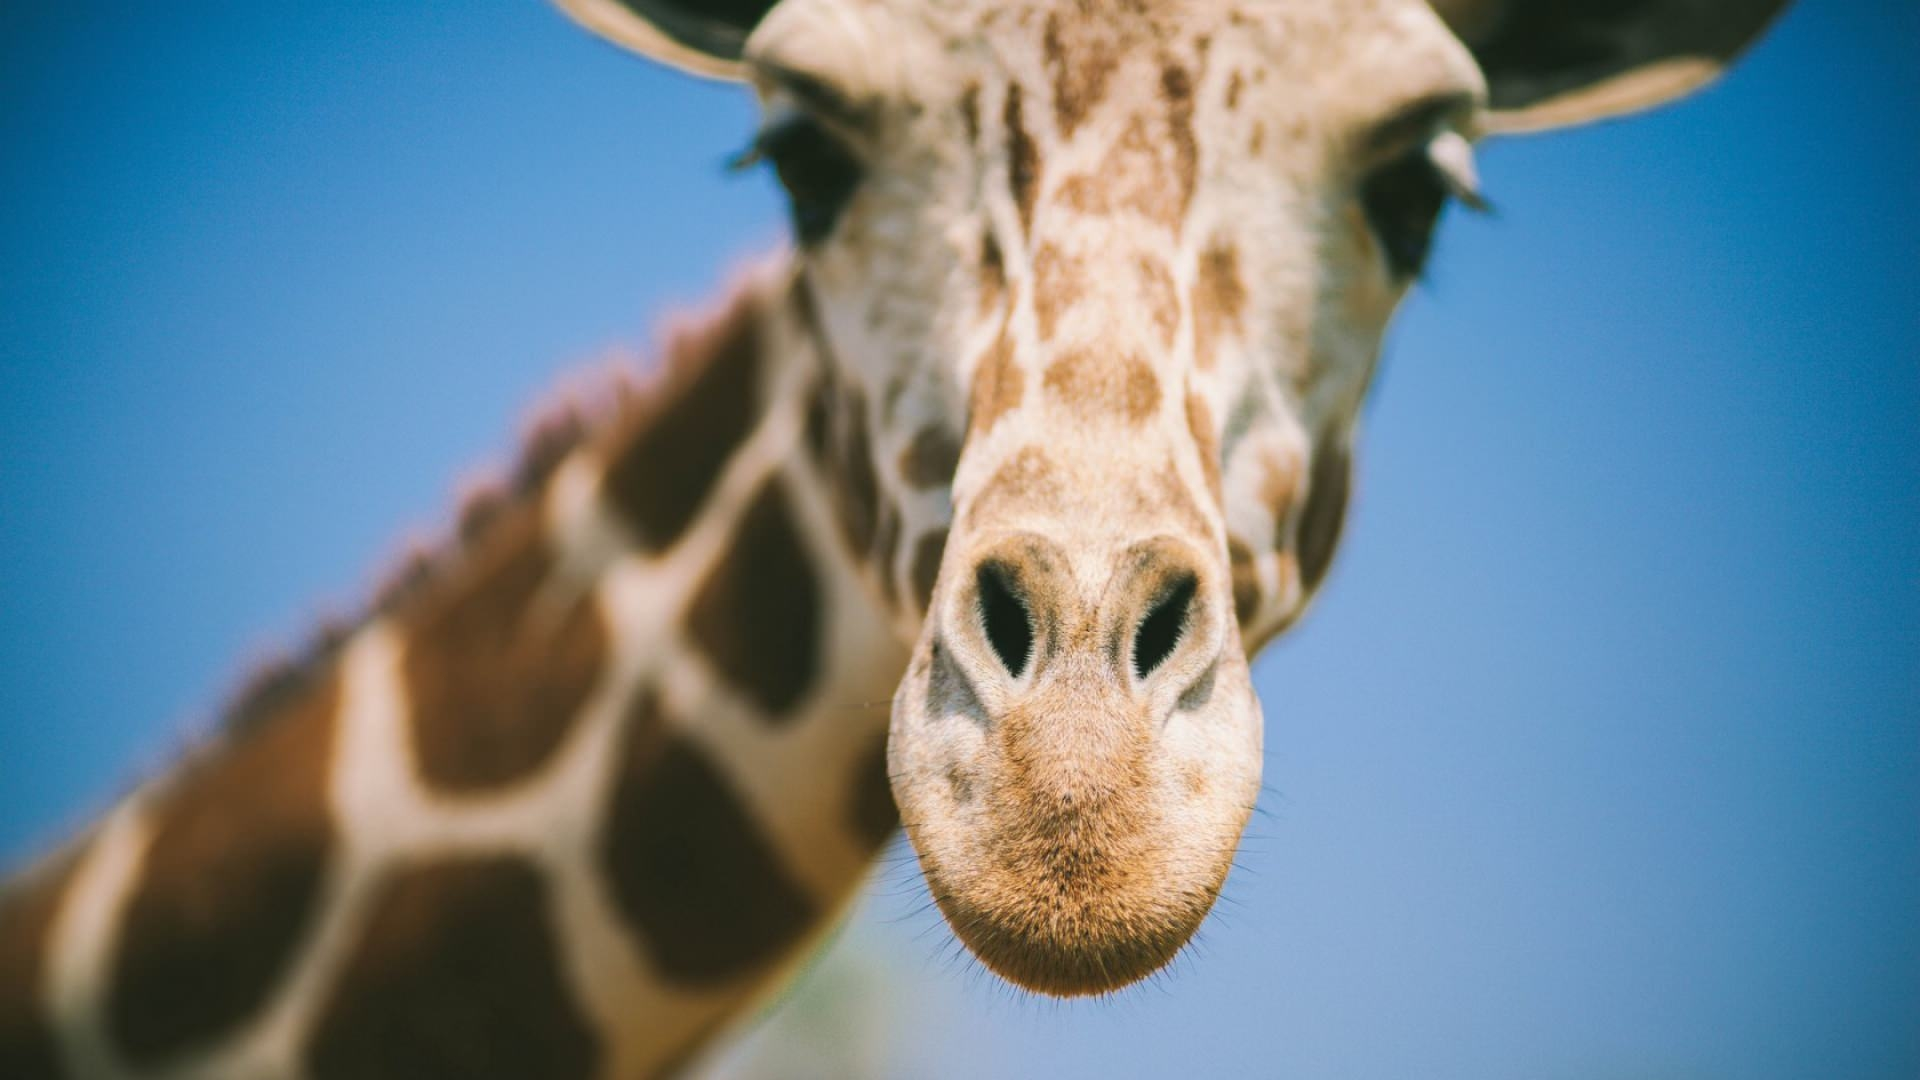 Blurred Giraffe Wallpaper For Free